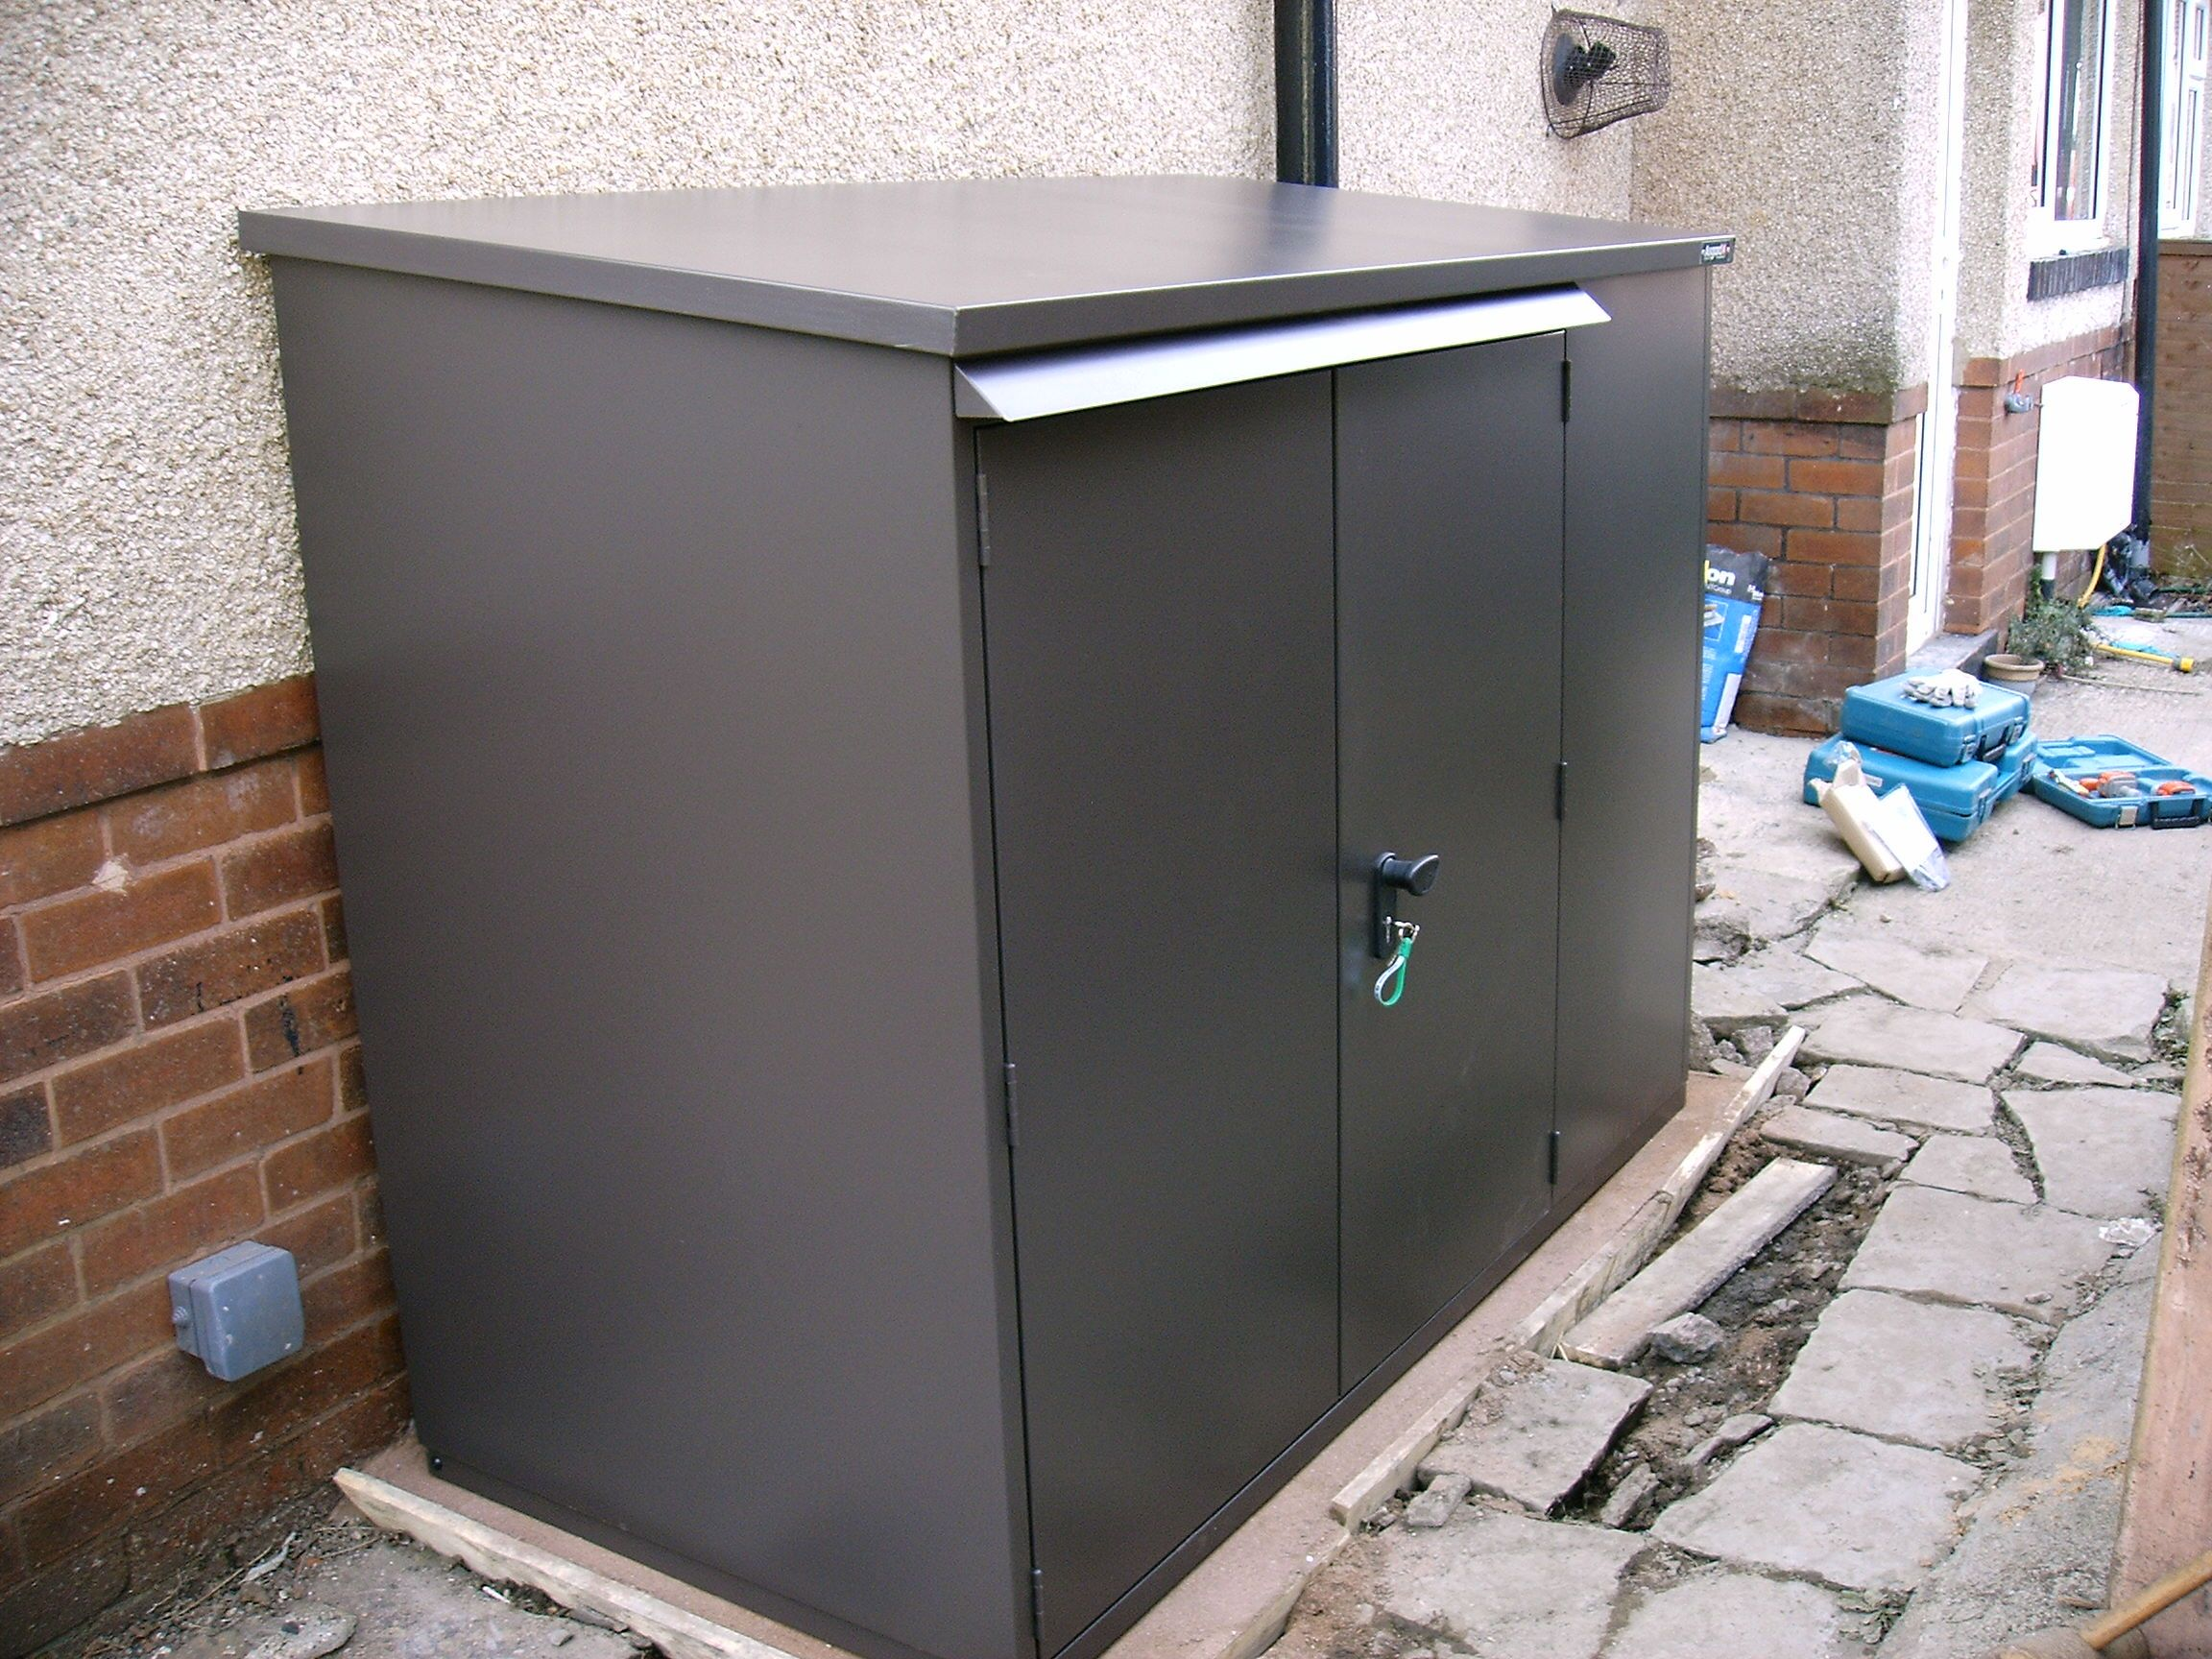 6ft X 3ft Police Approved Secure Bike Storage Secure Bike Storage Bike Storage Storage